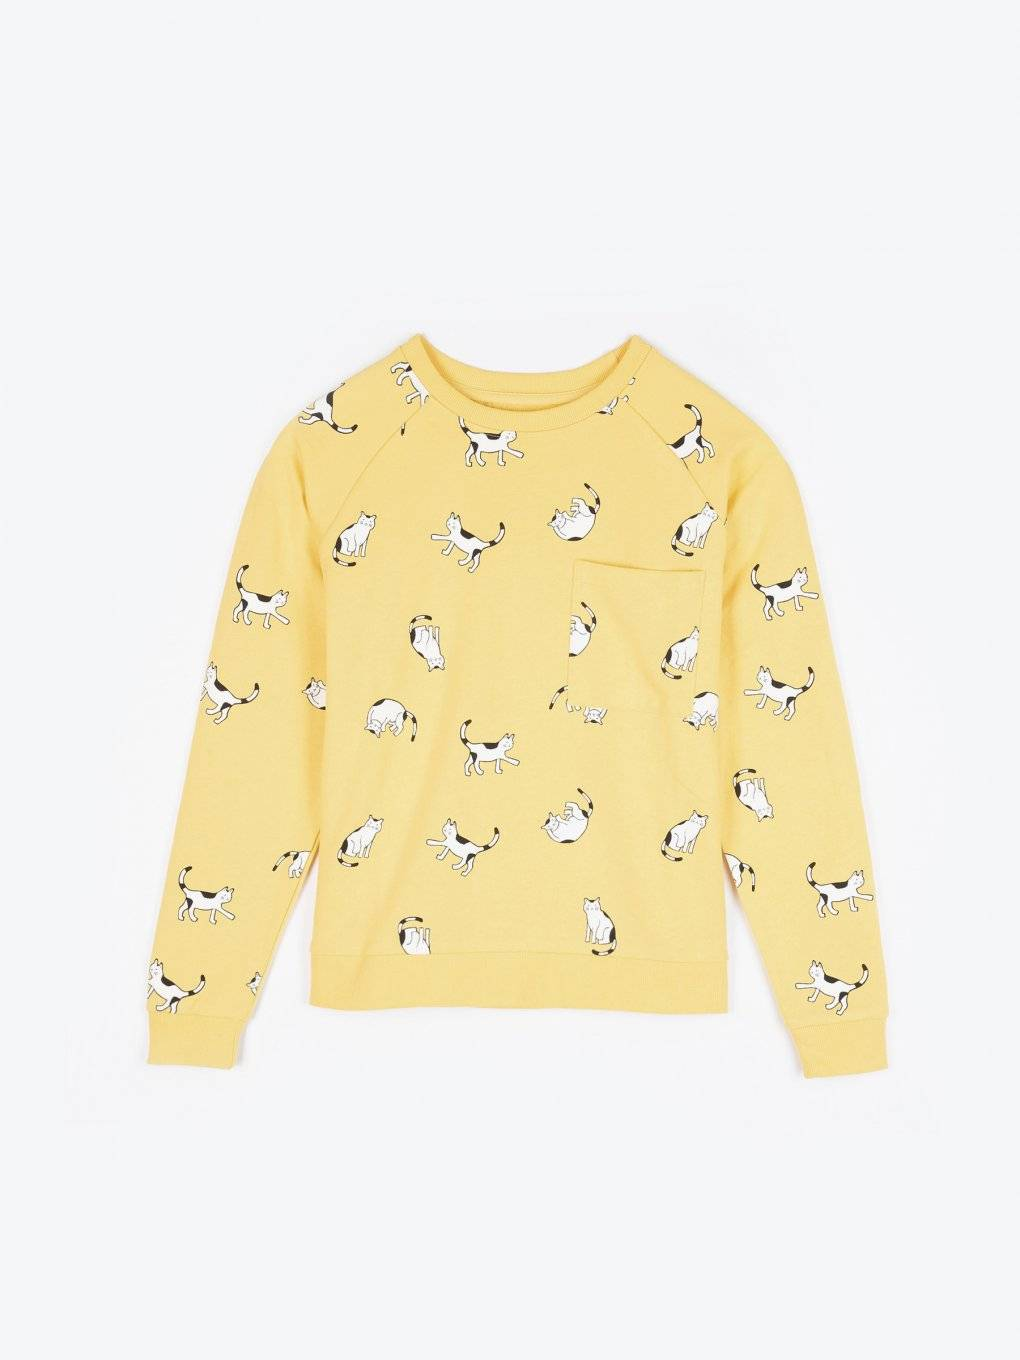 All over printed sweatshirts